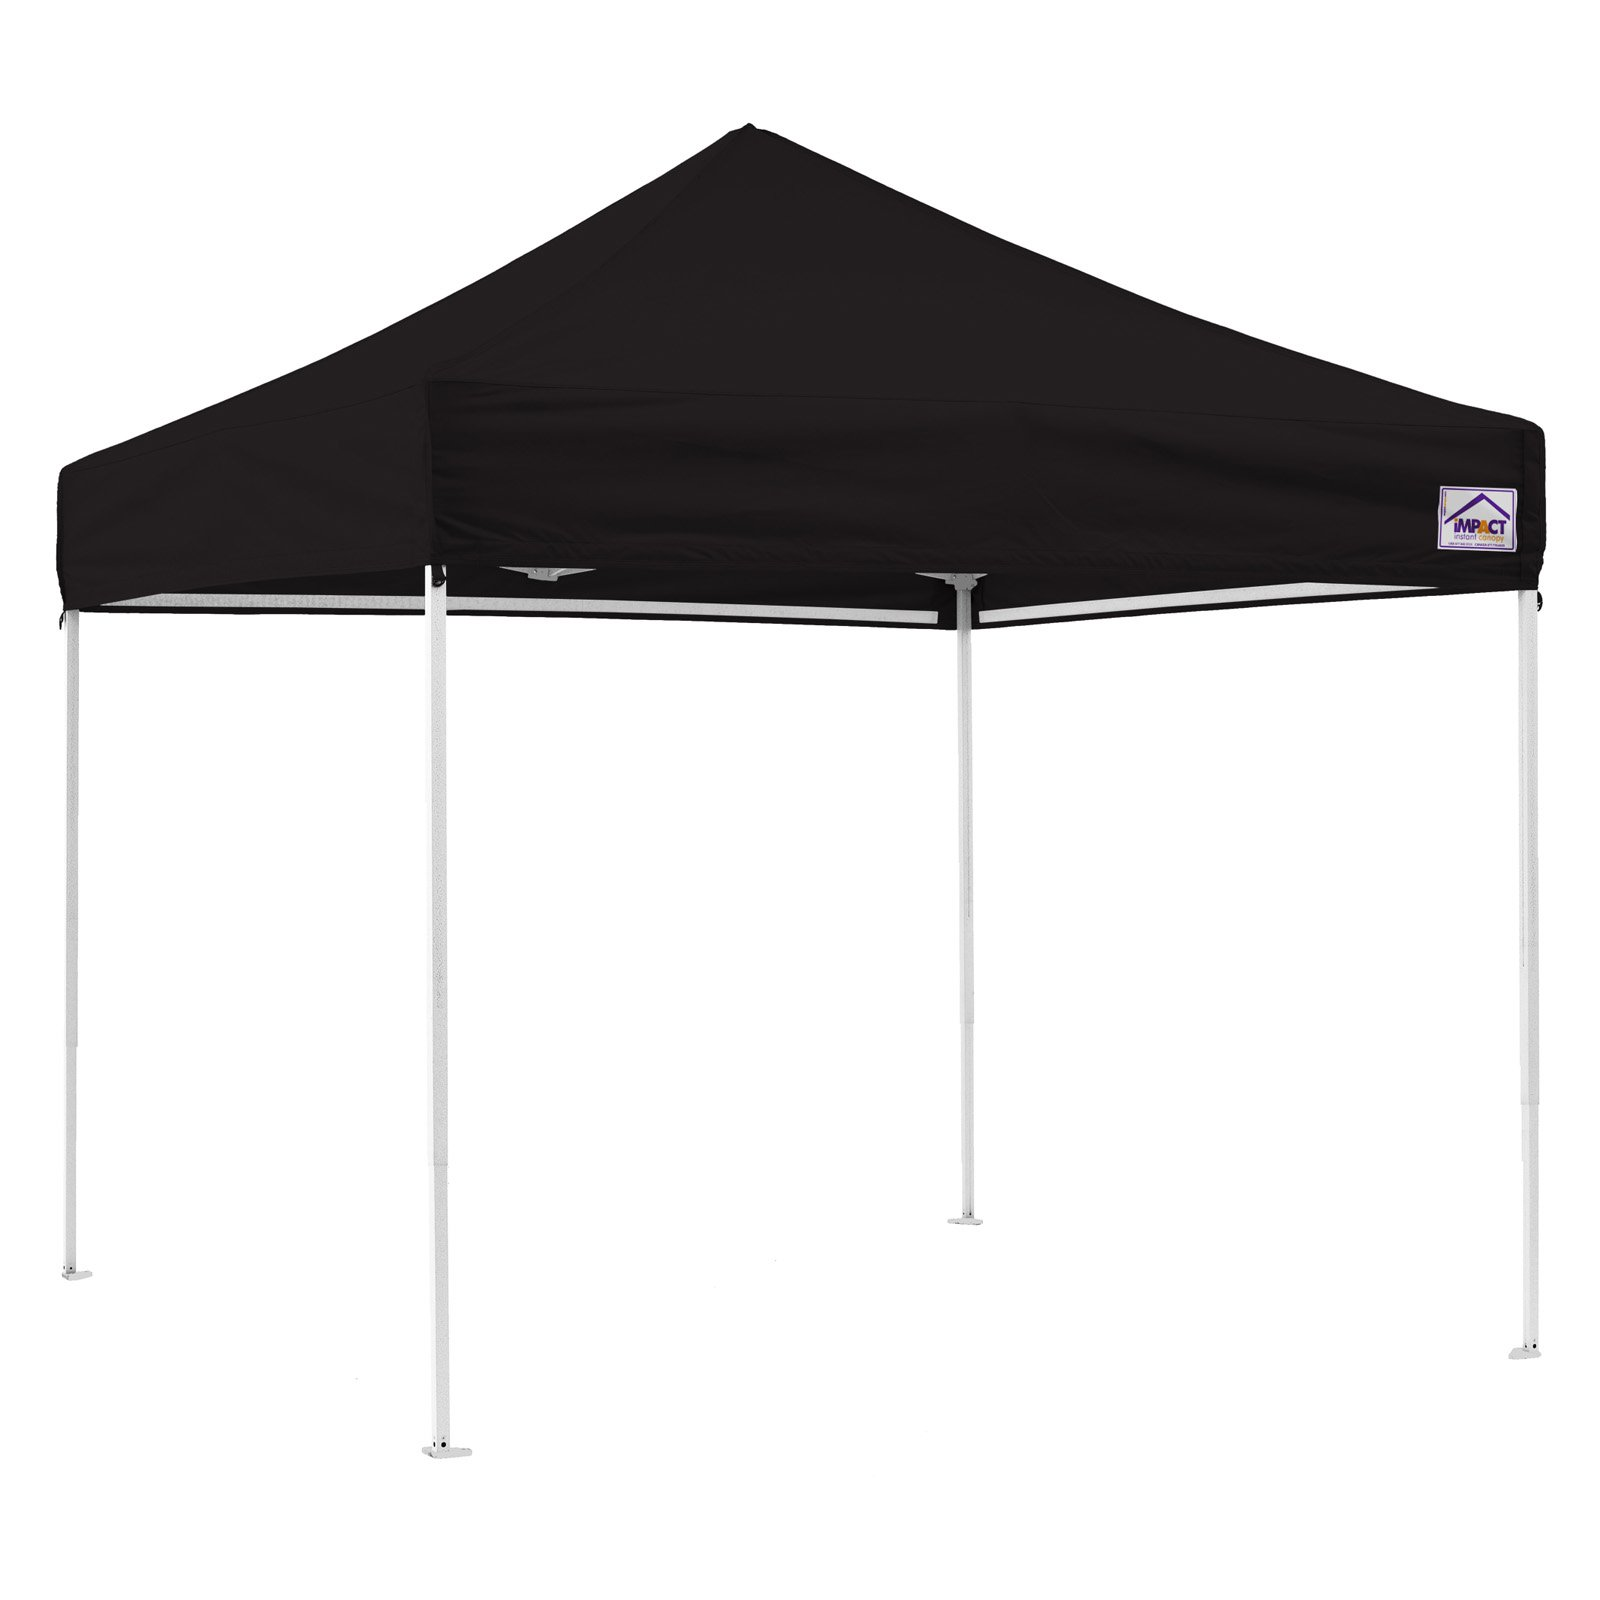 Impact Canopy 10 x 10 ft. EZ Pop Up Canopy with Weight Bags and